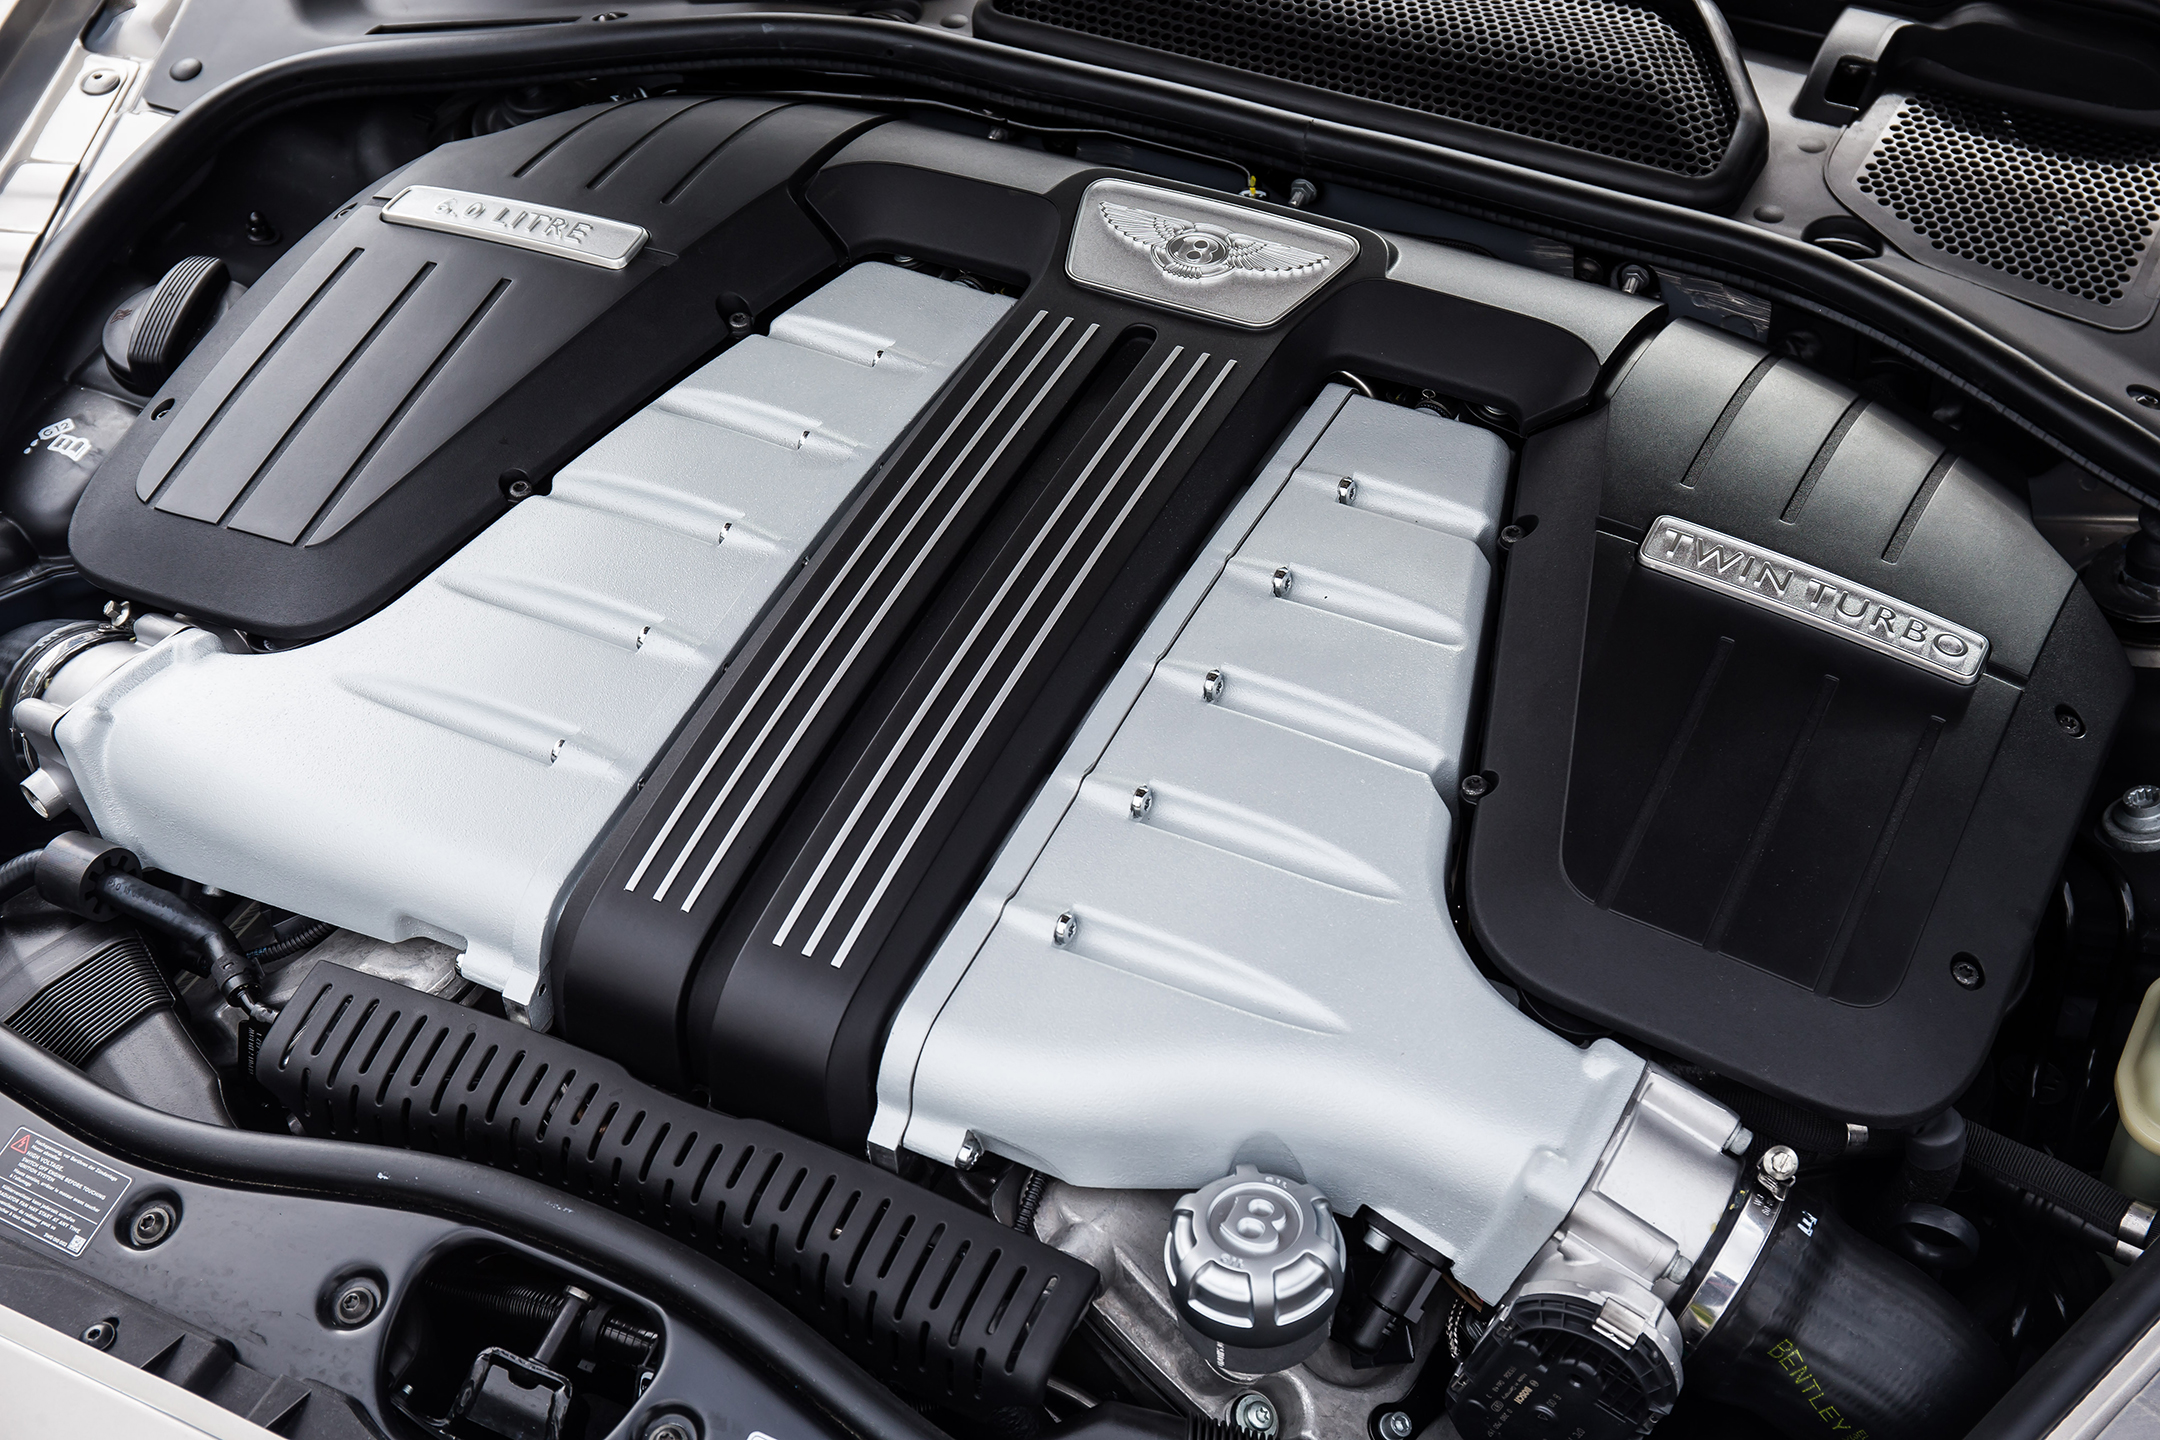 Bentley Continental GT - 2020 - engine / moteur - W12 - 6.0L - TwinTurbo